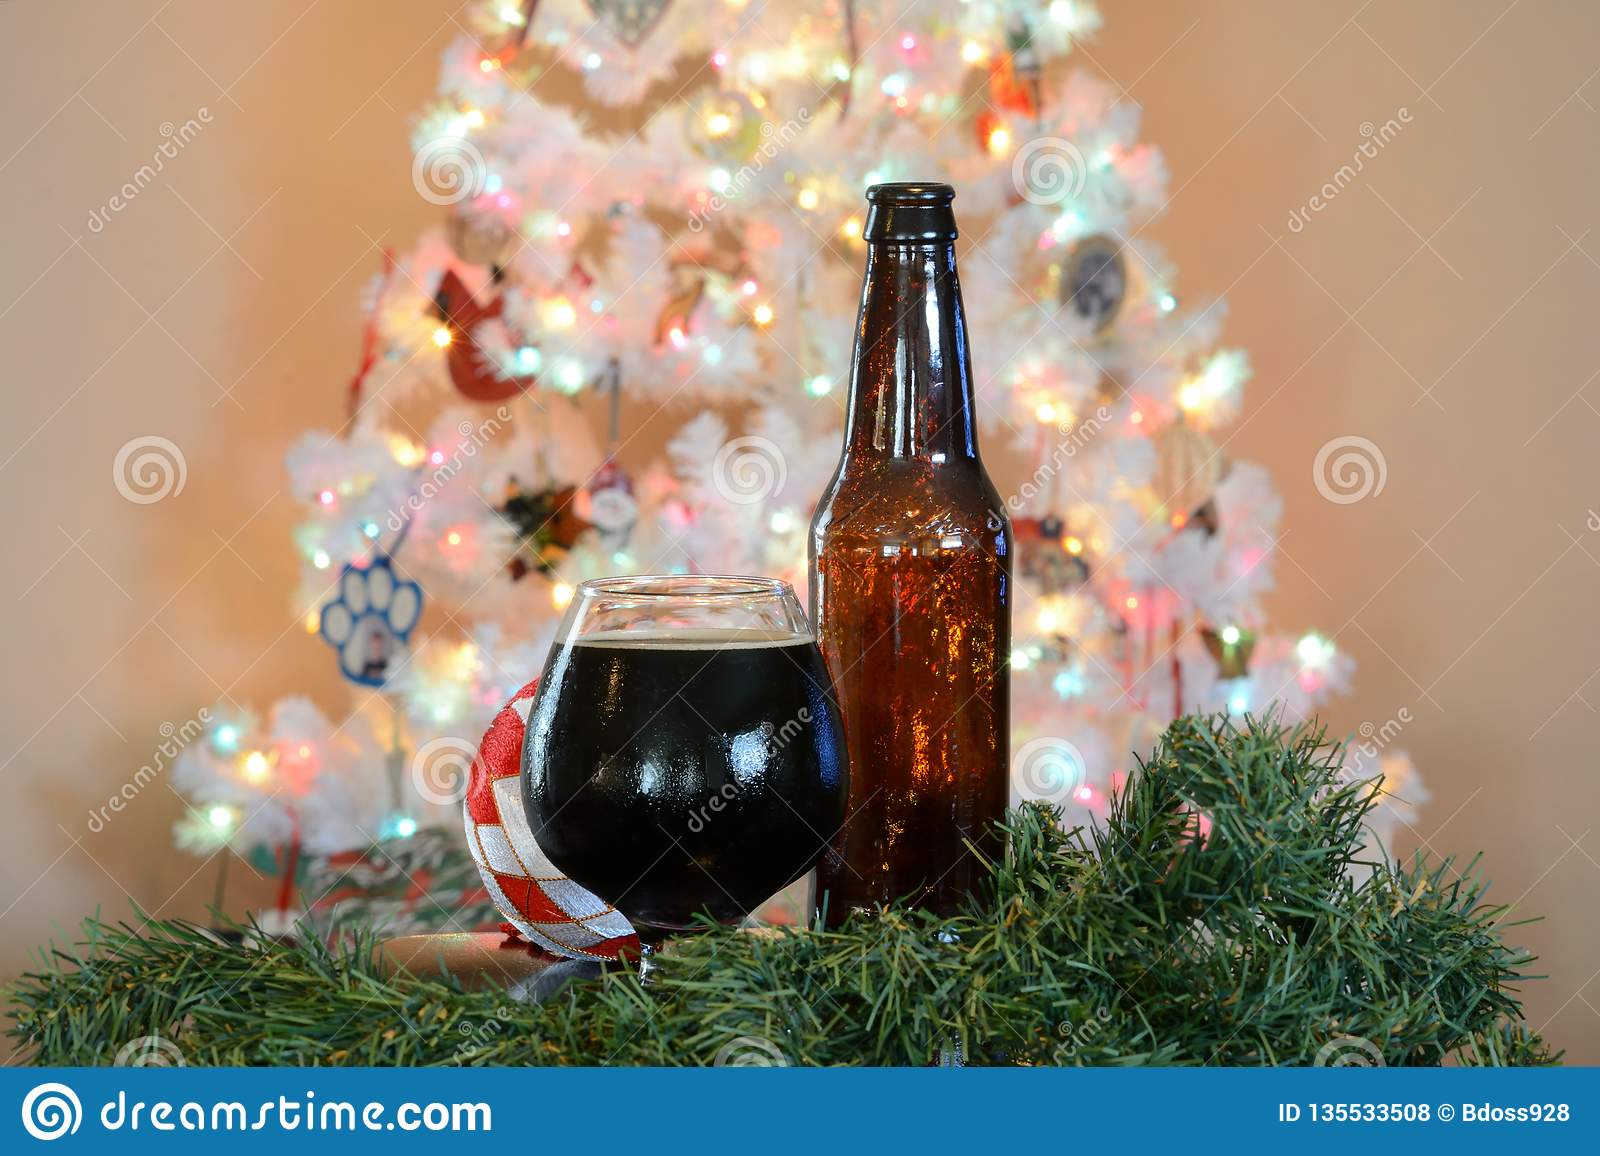 Glass Of Beer Posed In Front Of White Christmas Tree With Colored Lights Stock Photo Image Of Bokeh Colorful 135533508